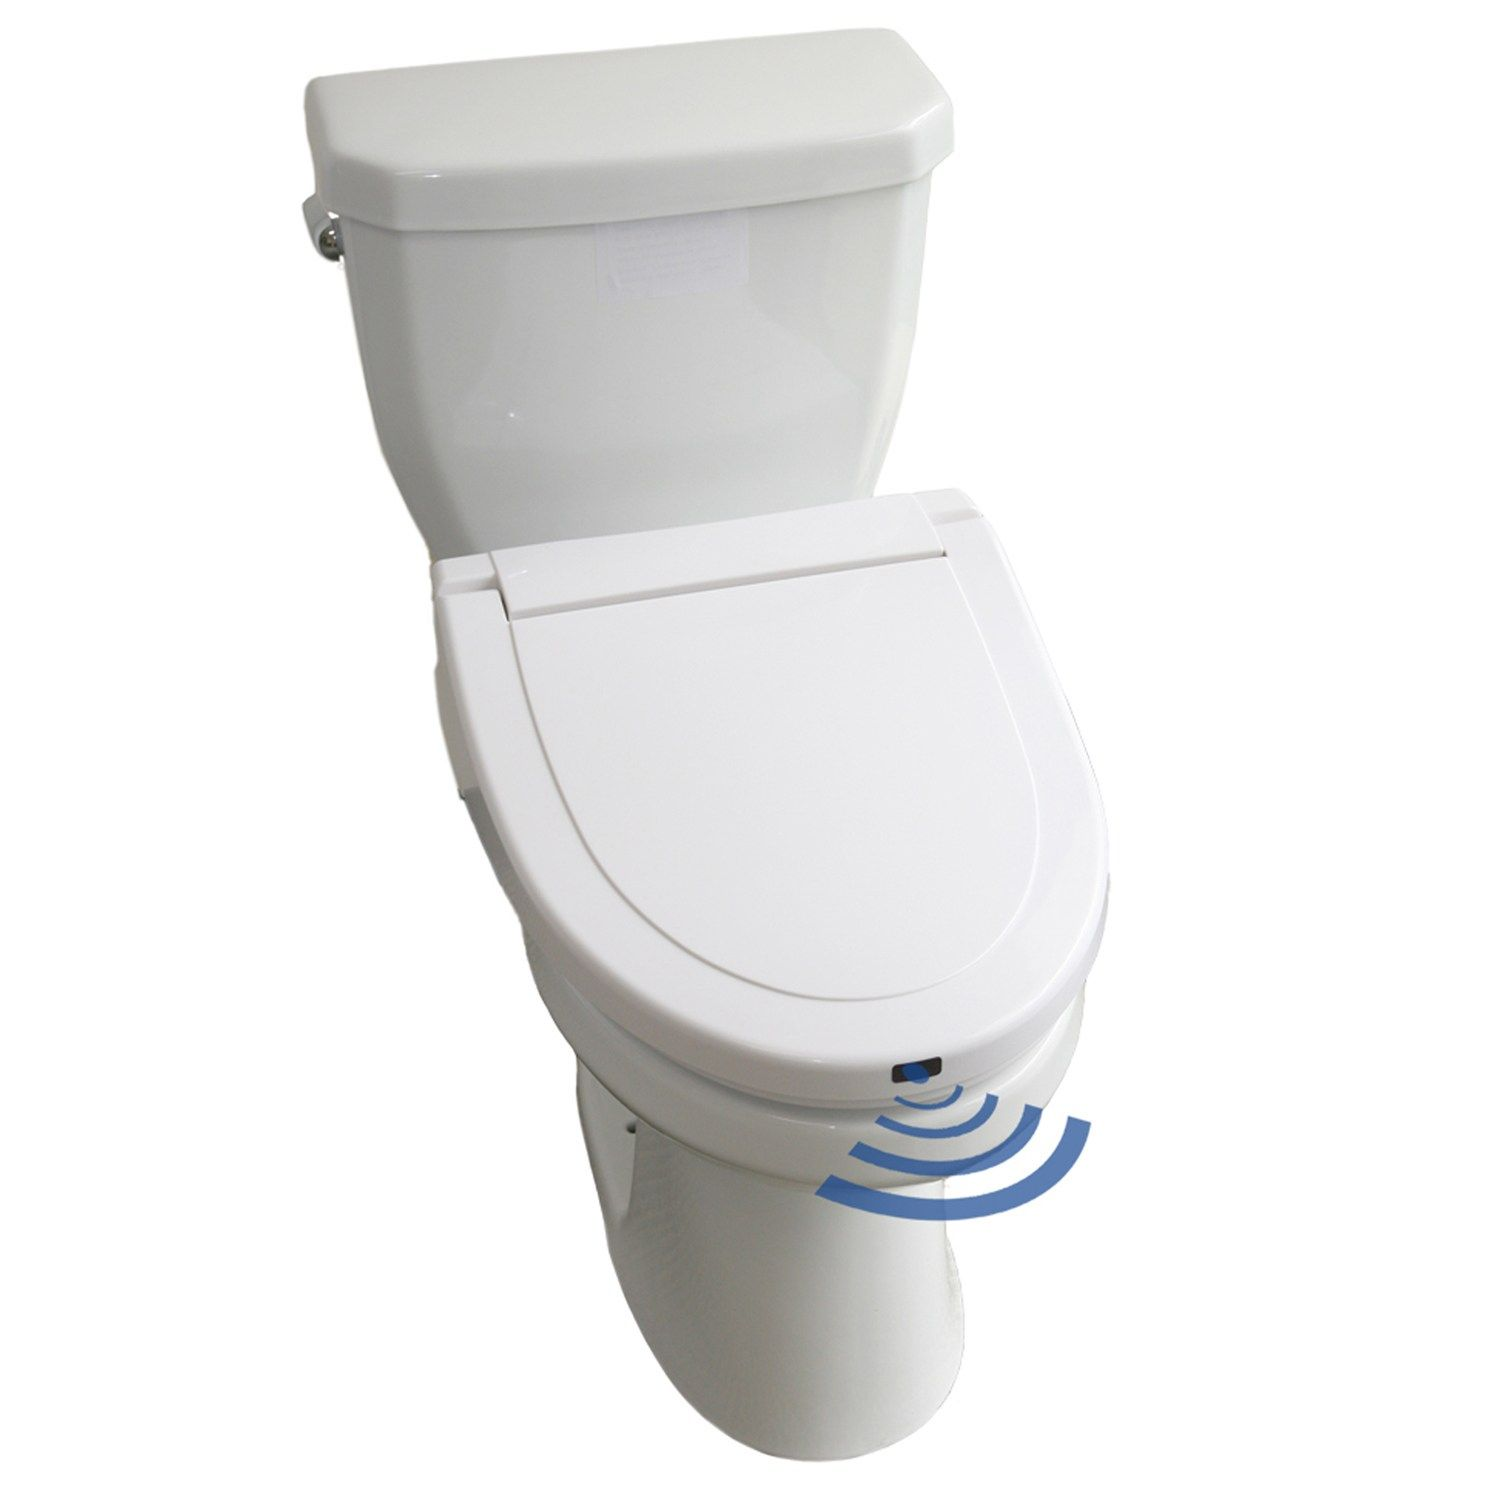 Itouchless Elongated Touch Free Sensor Controlled Automatic Toilet Seat Touch Free Itouchless Elongated Toilet Seat Toilet Amazing Bathrooms